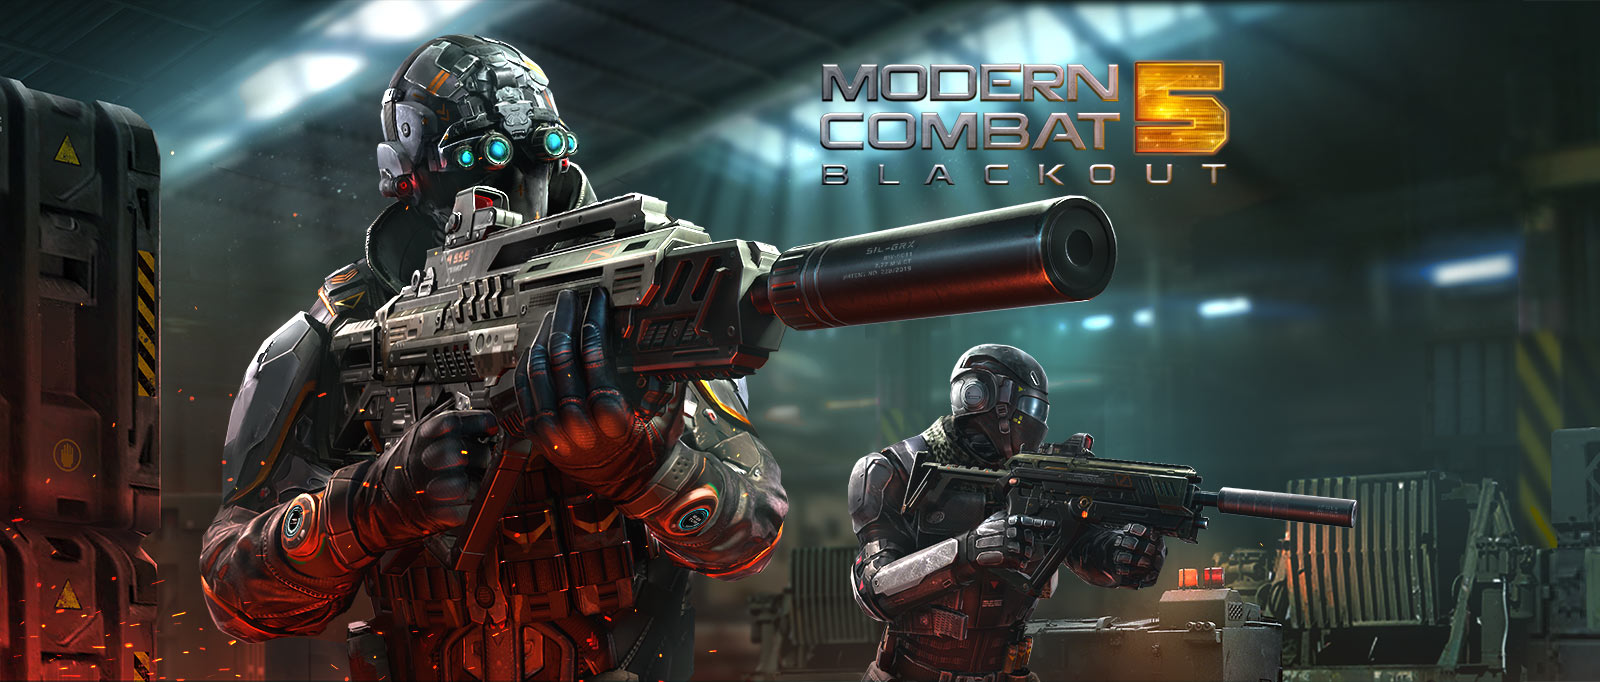 Modern Combat: Blackout, Nintendo Switch'e Geliyor!